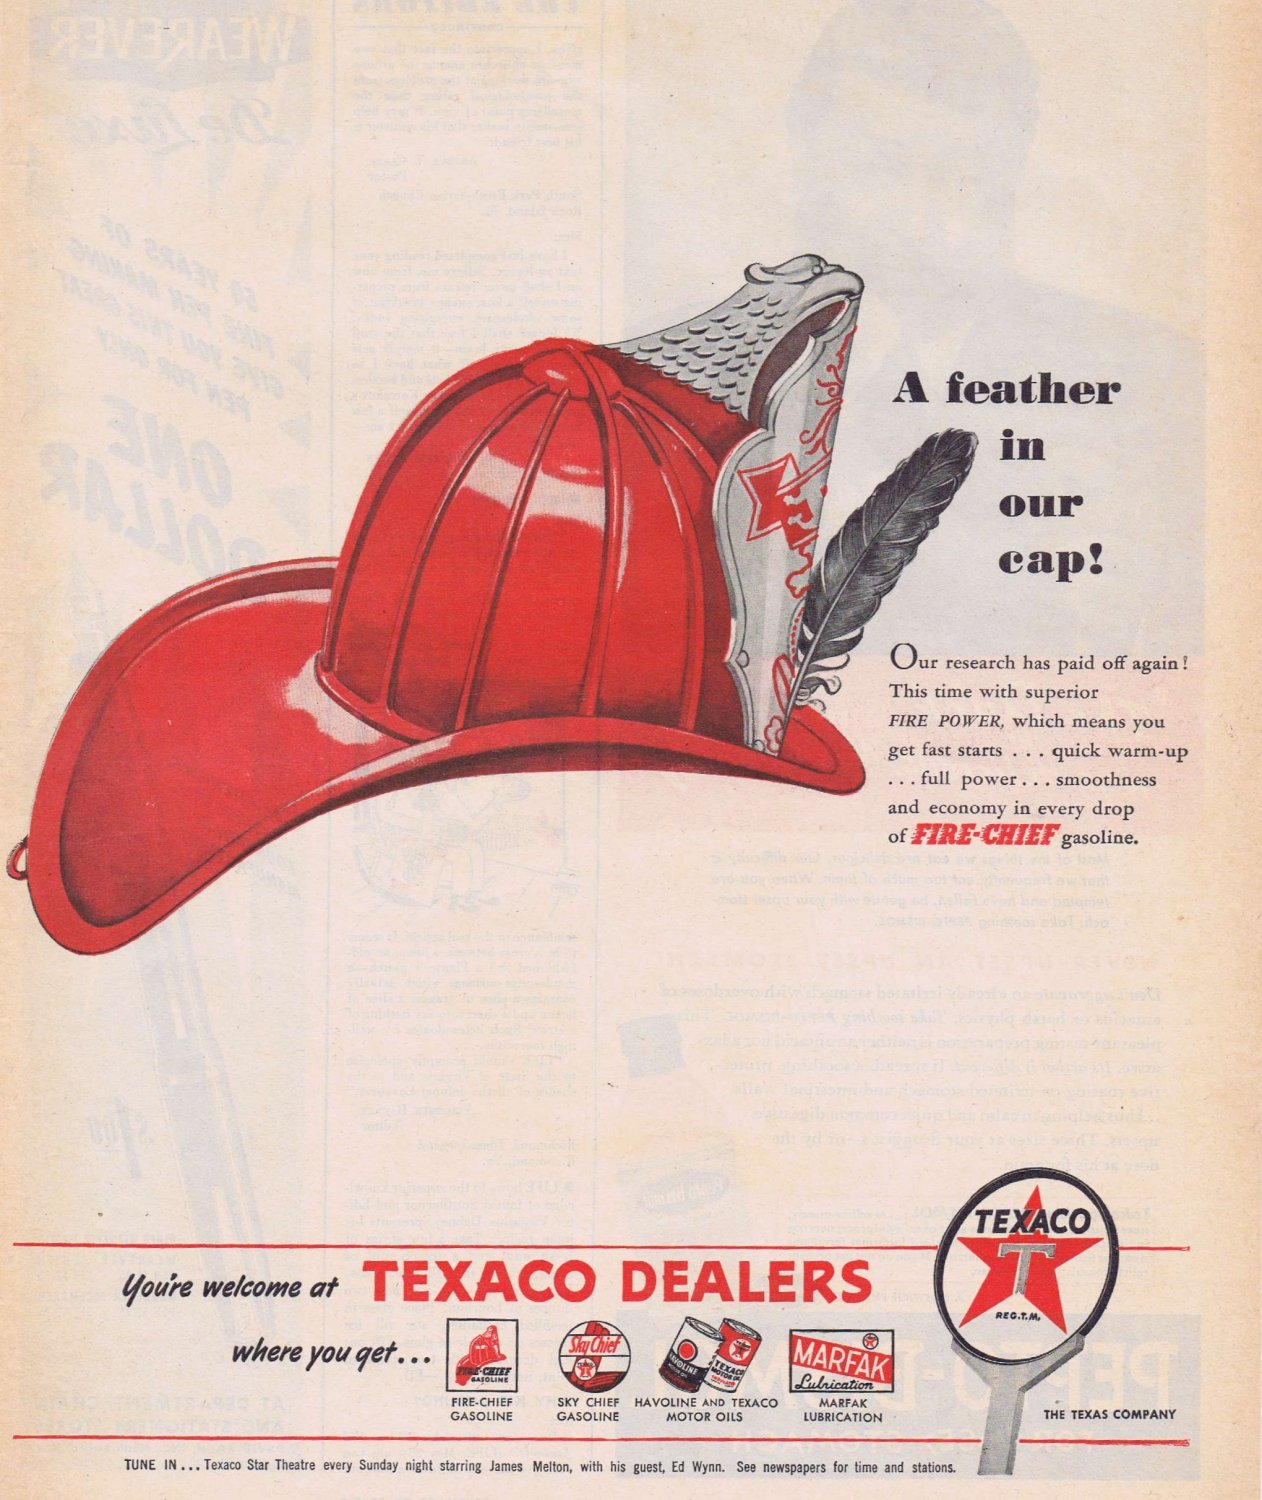 1947 Texaco Dealers Original Vintage Advertisement with Famous Fire-Chief cap